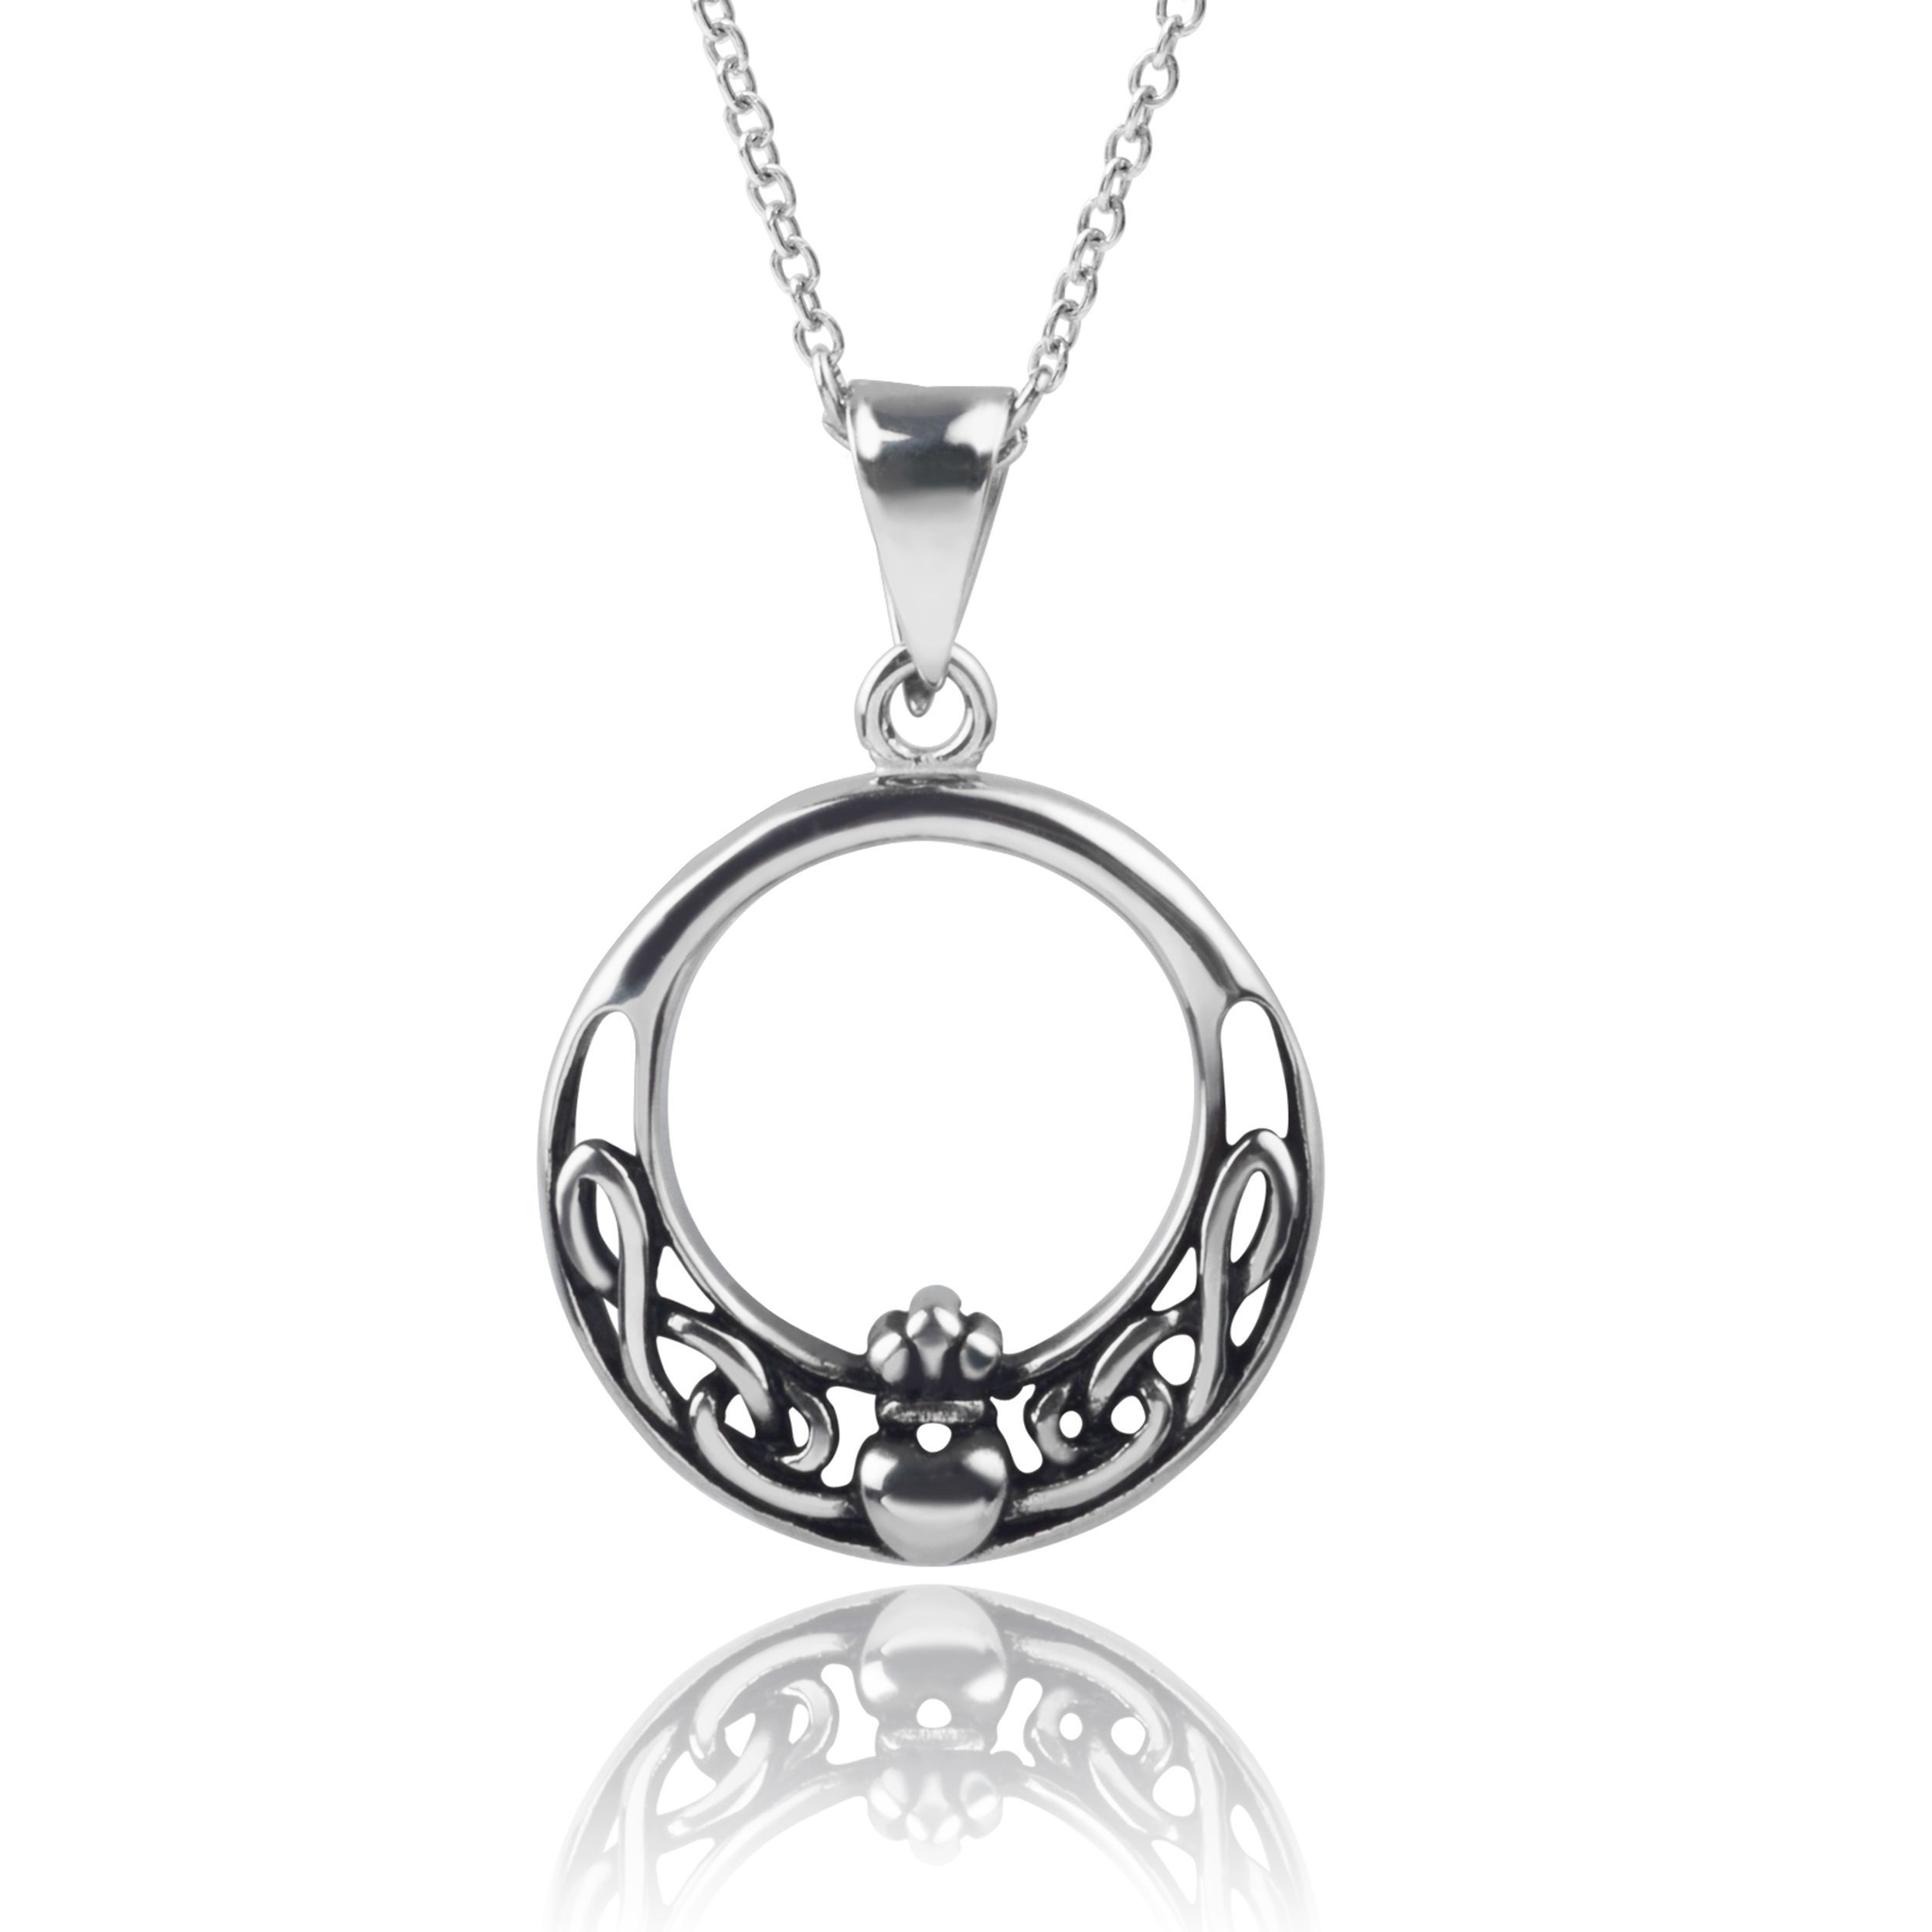 sterling necklace vjnb ebay silver moon pendant brass itm handmade jewelry celtic